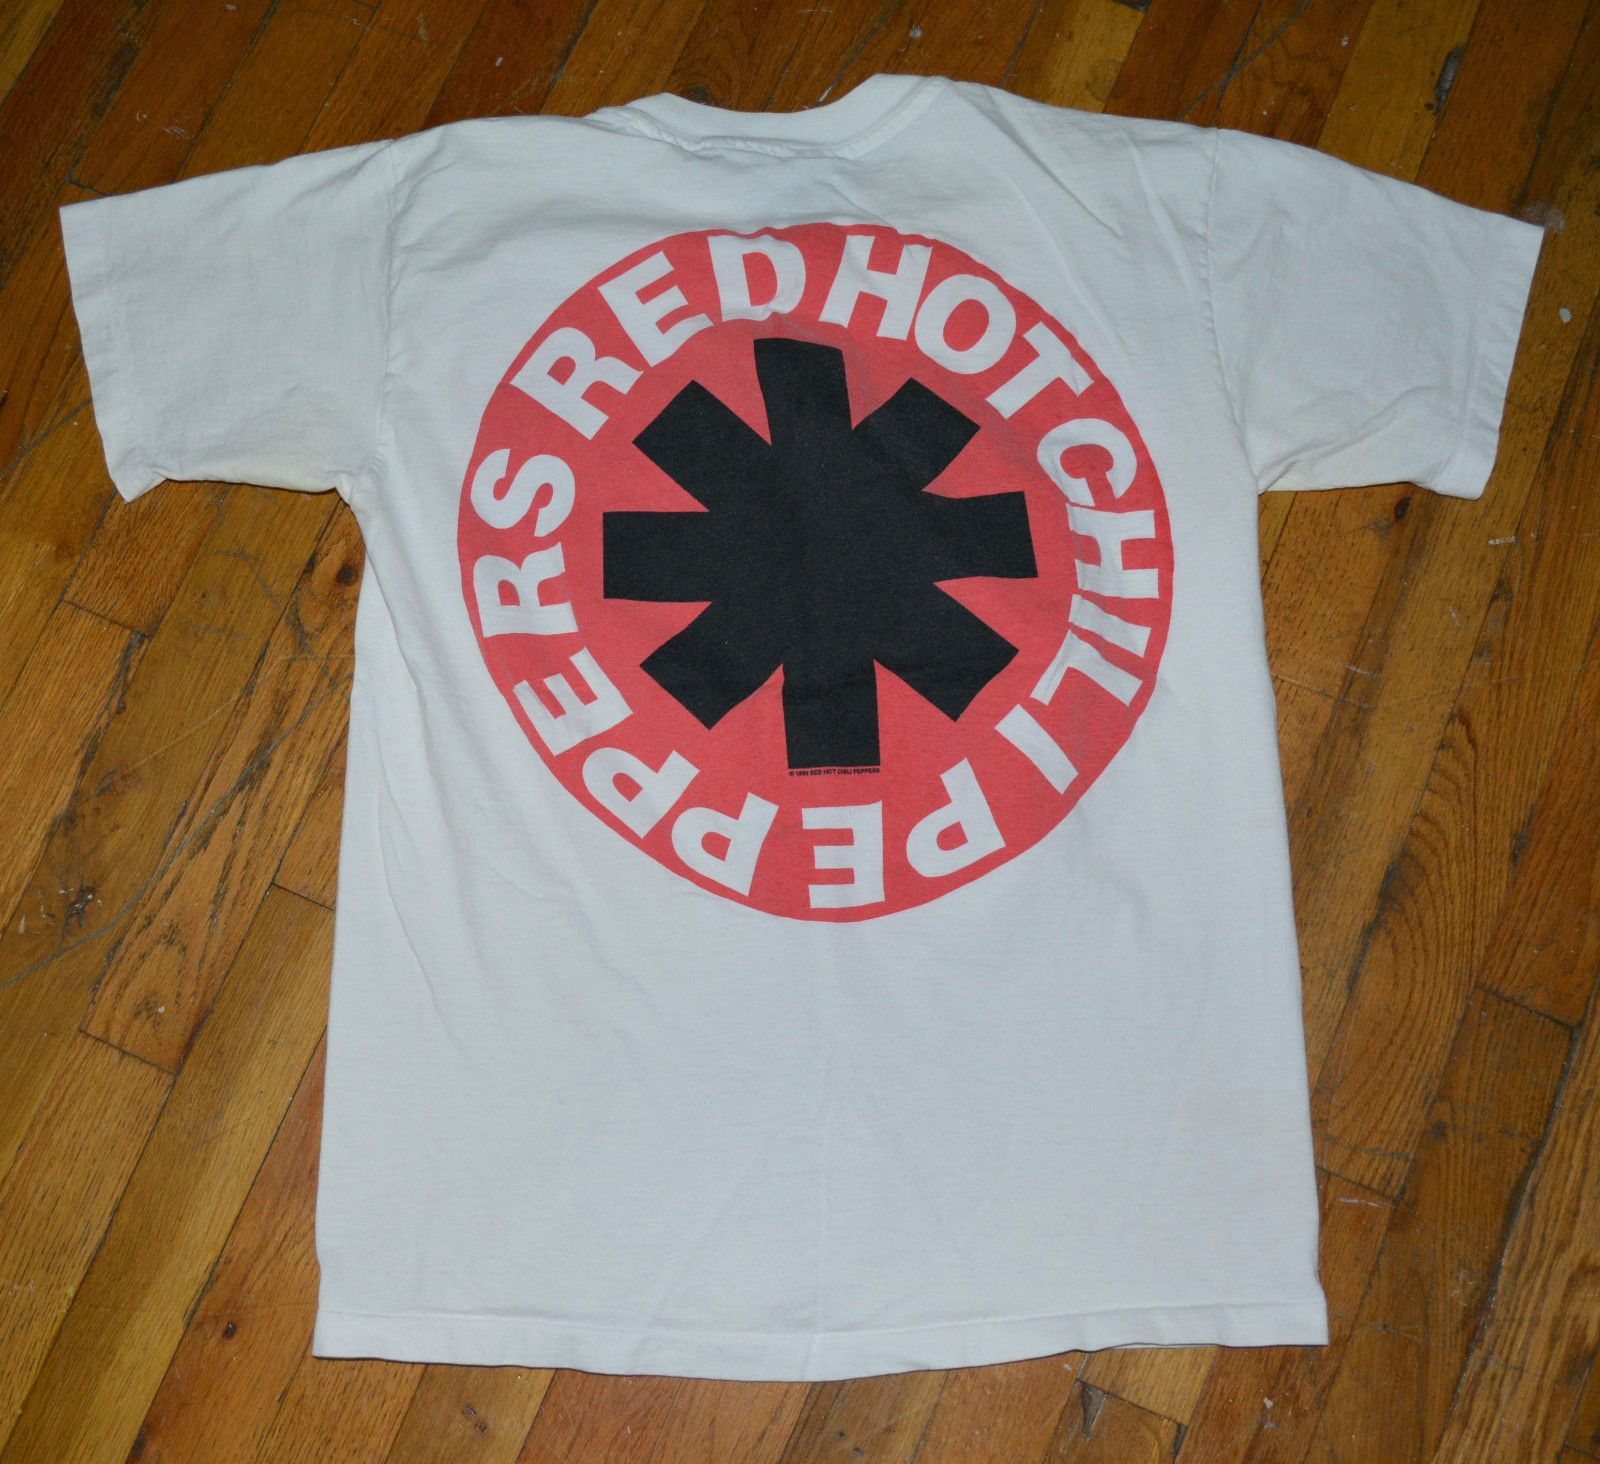 1744db1f RaRe *1990 RED HOT CHILI PEPPERS* vtg rock concert tour shirt M/L 80's 90's  RHCP | eBay